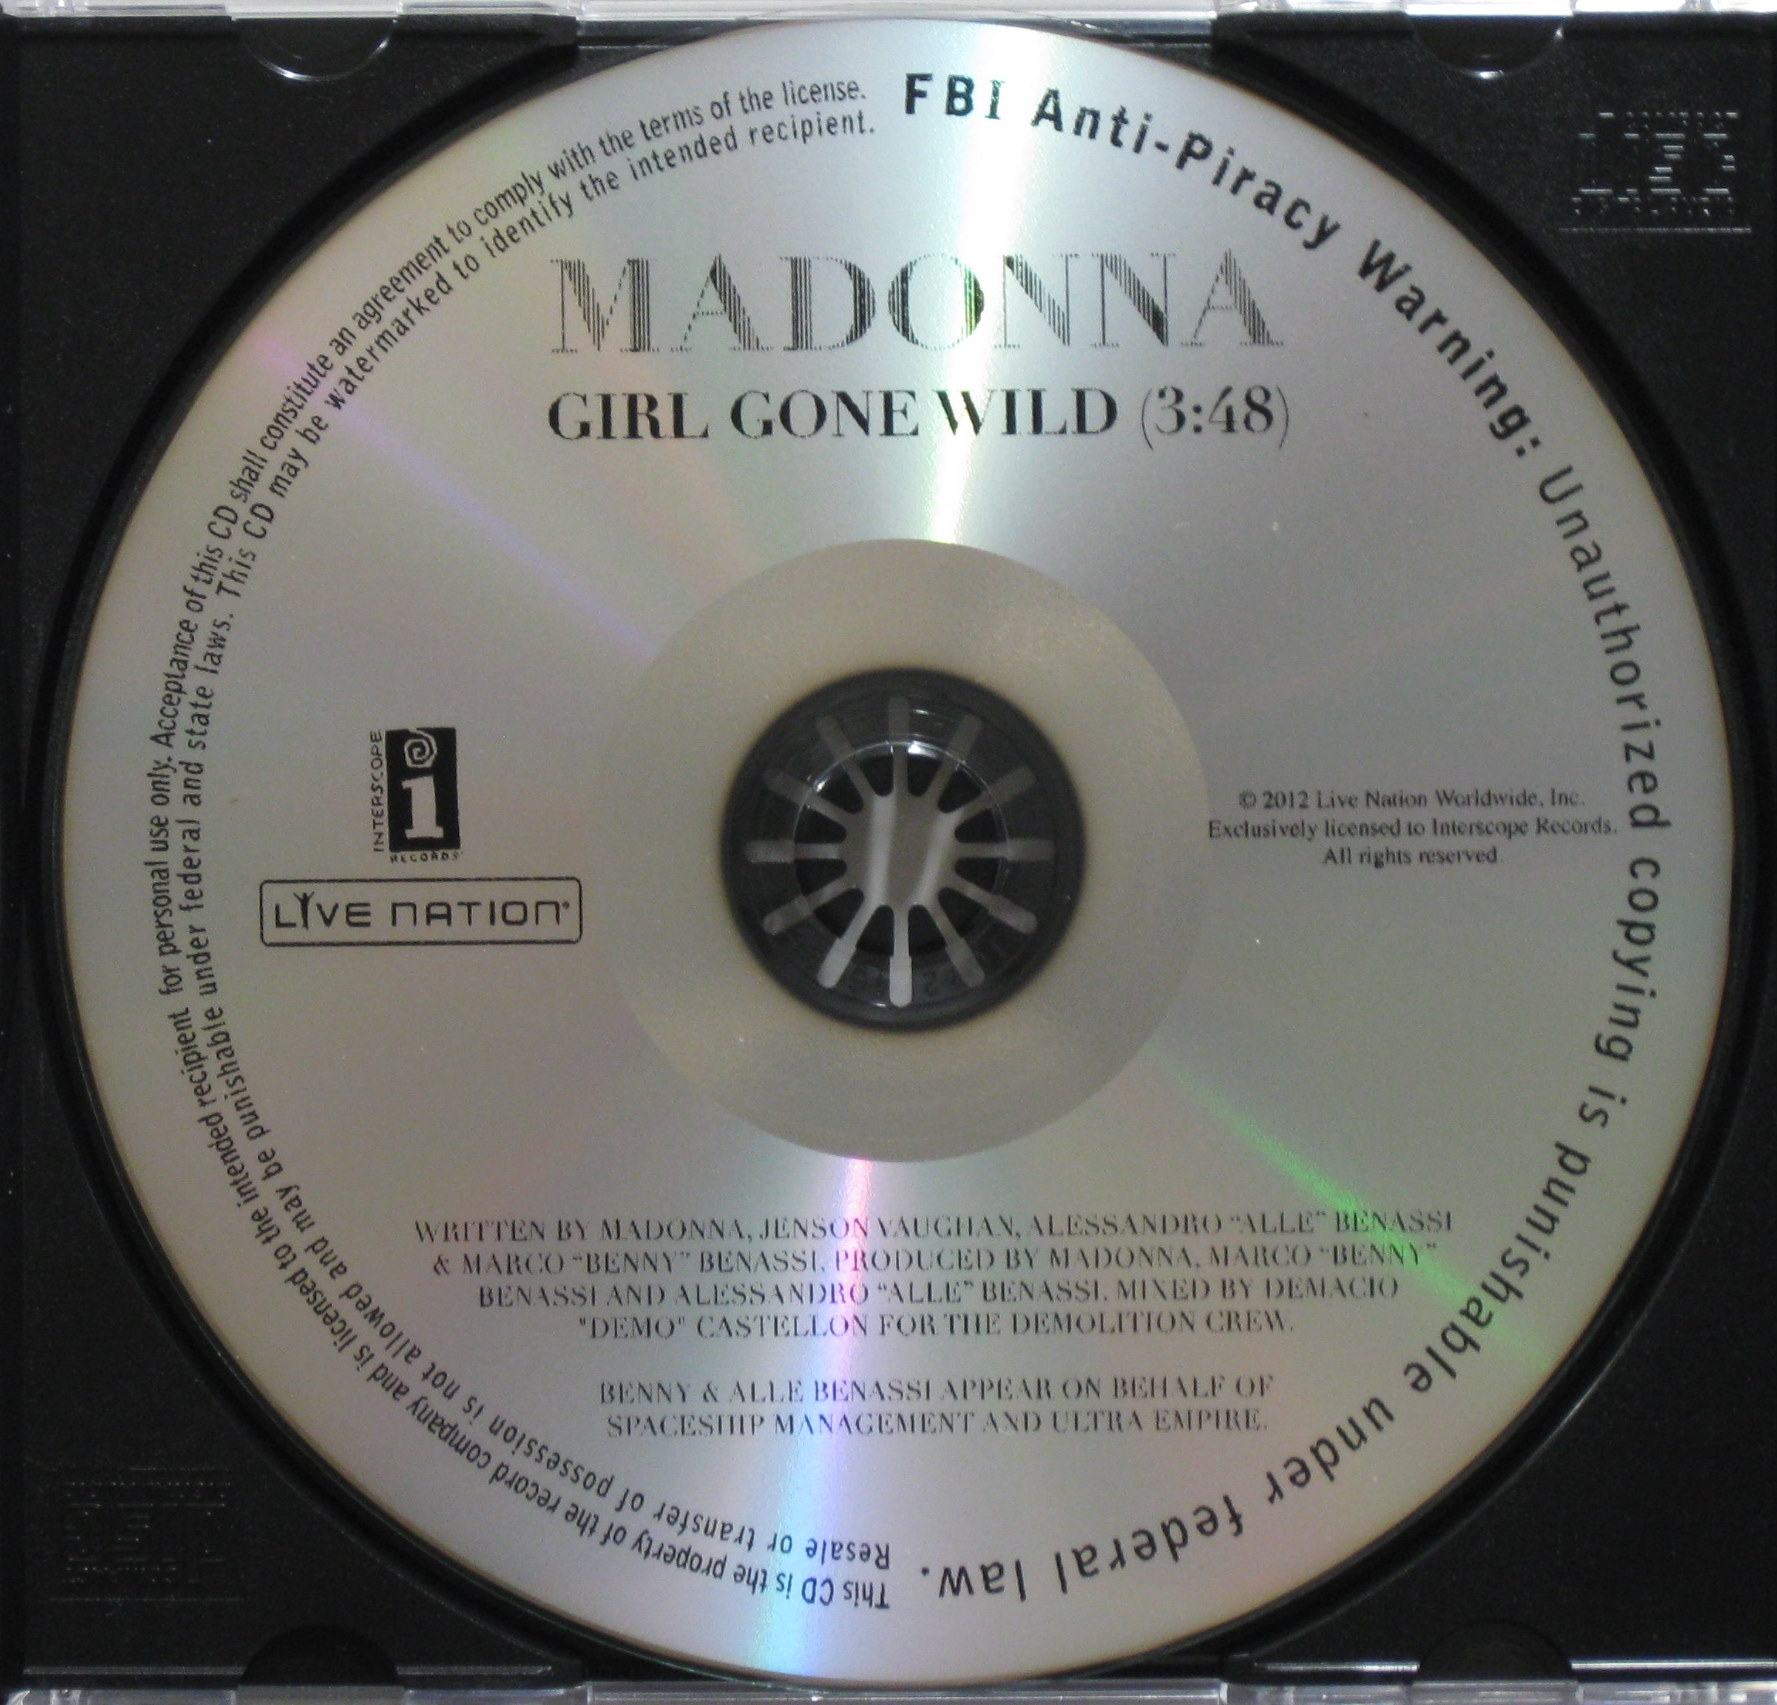 20120316 news madonna girl gone wild us promo cd MDNA #1 Aux Etats Unis & En Bref...